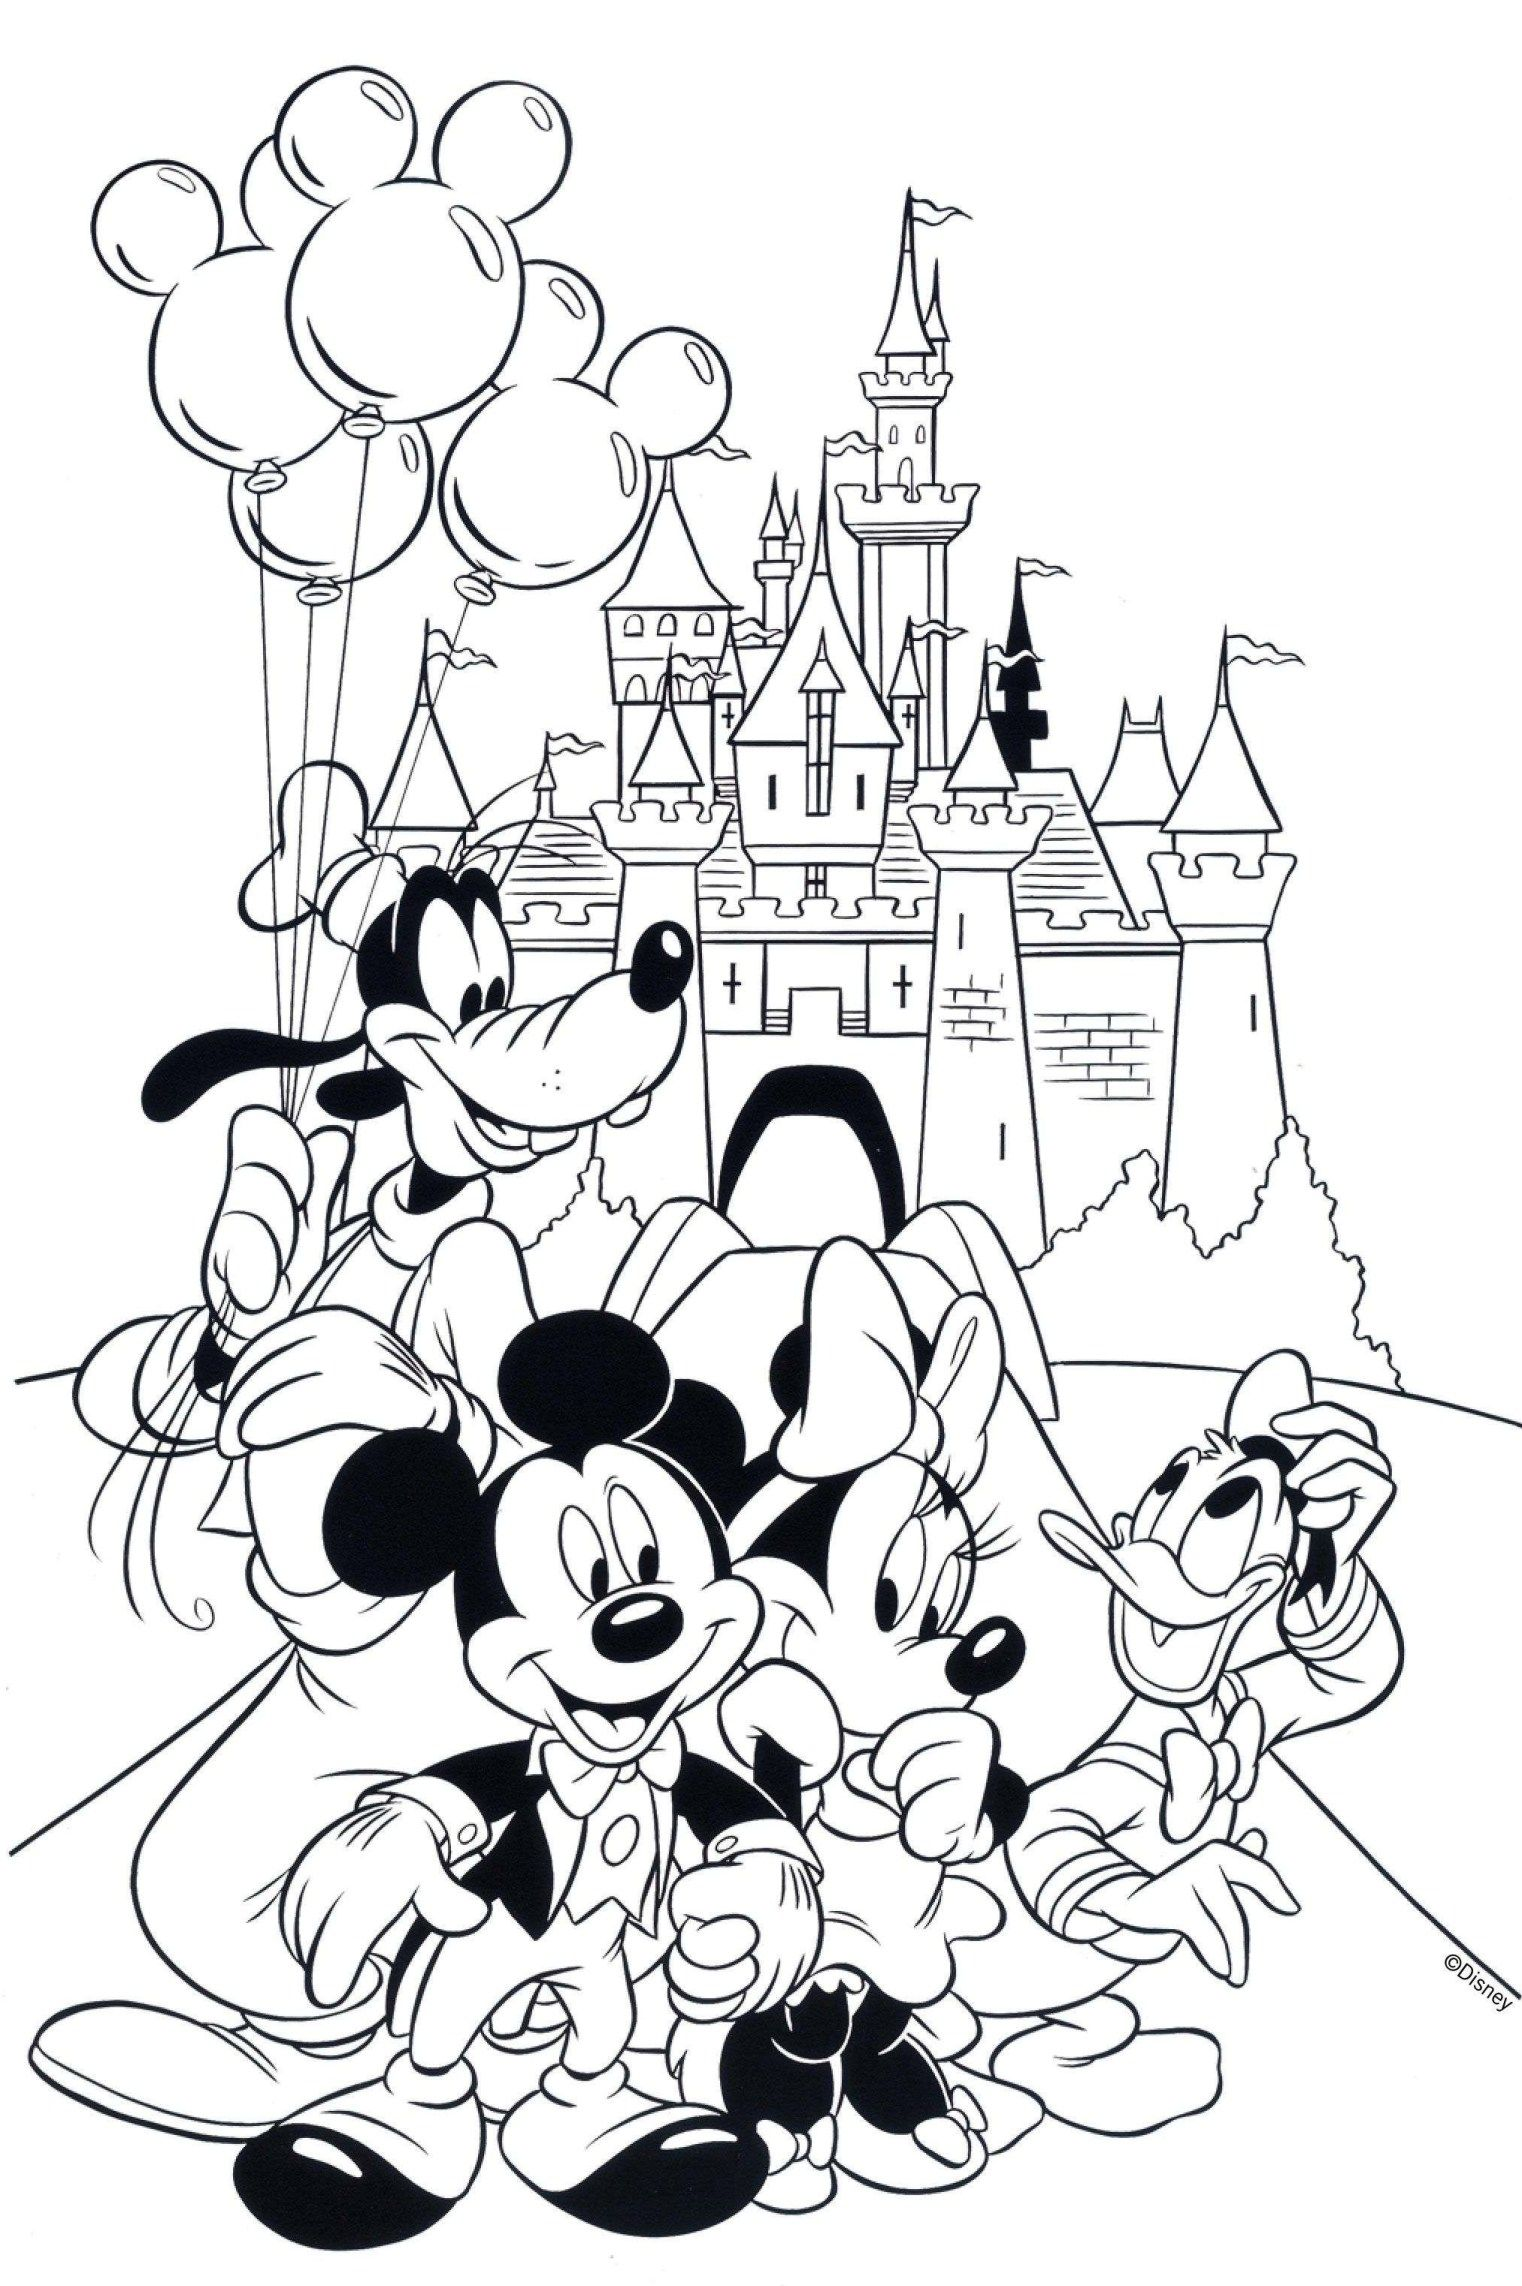 Mickey And Minnie Coloring Pages Ba Mickey And Minnie Coloring Pages Printable Mousemickey Best Of Davemelillo Com Cartoon Coloring Pages Mickey Mouse Coloring Pages Disney Coloring Pages